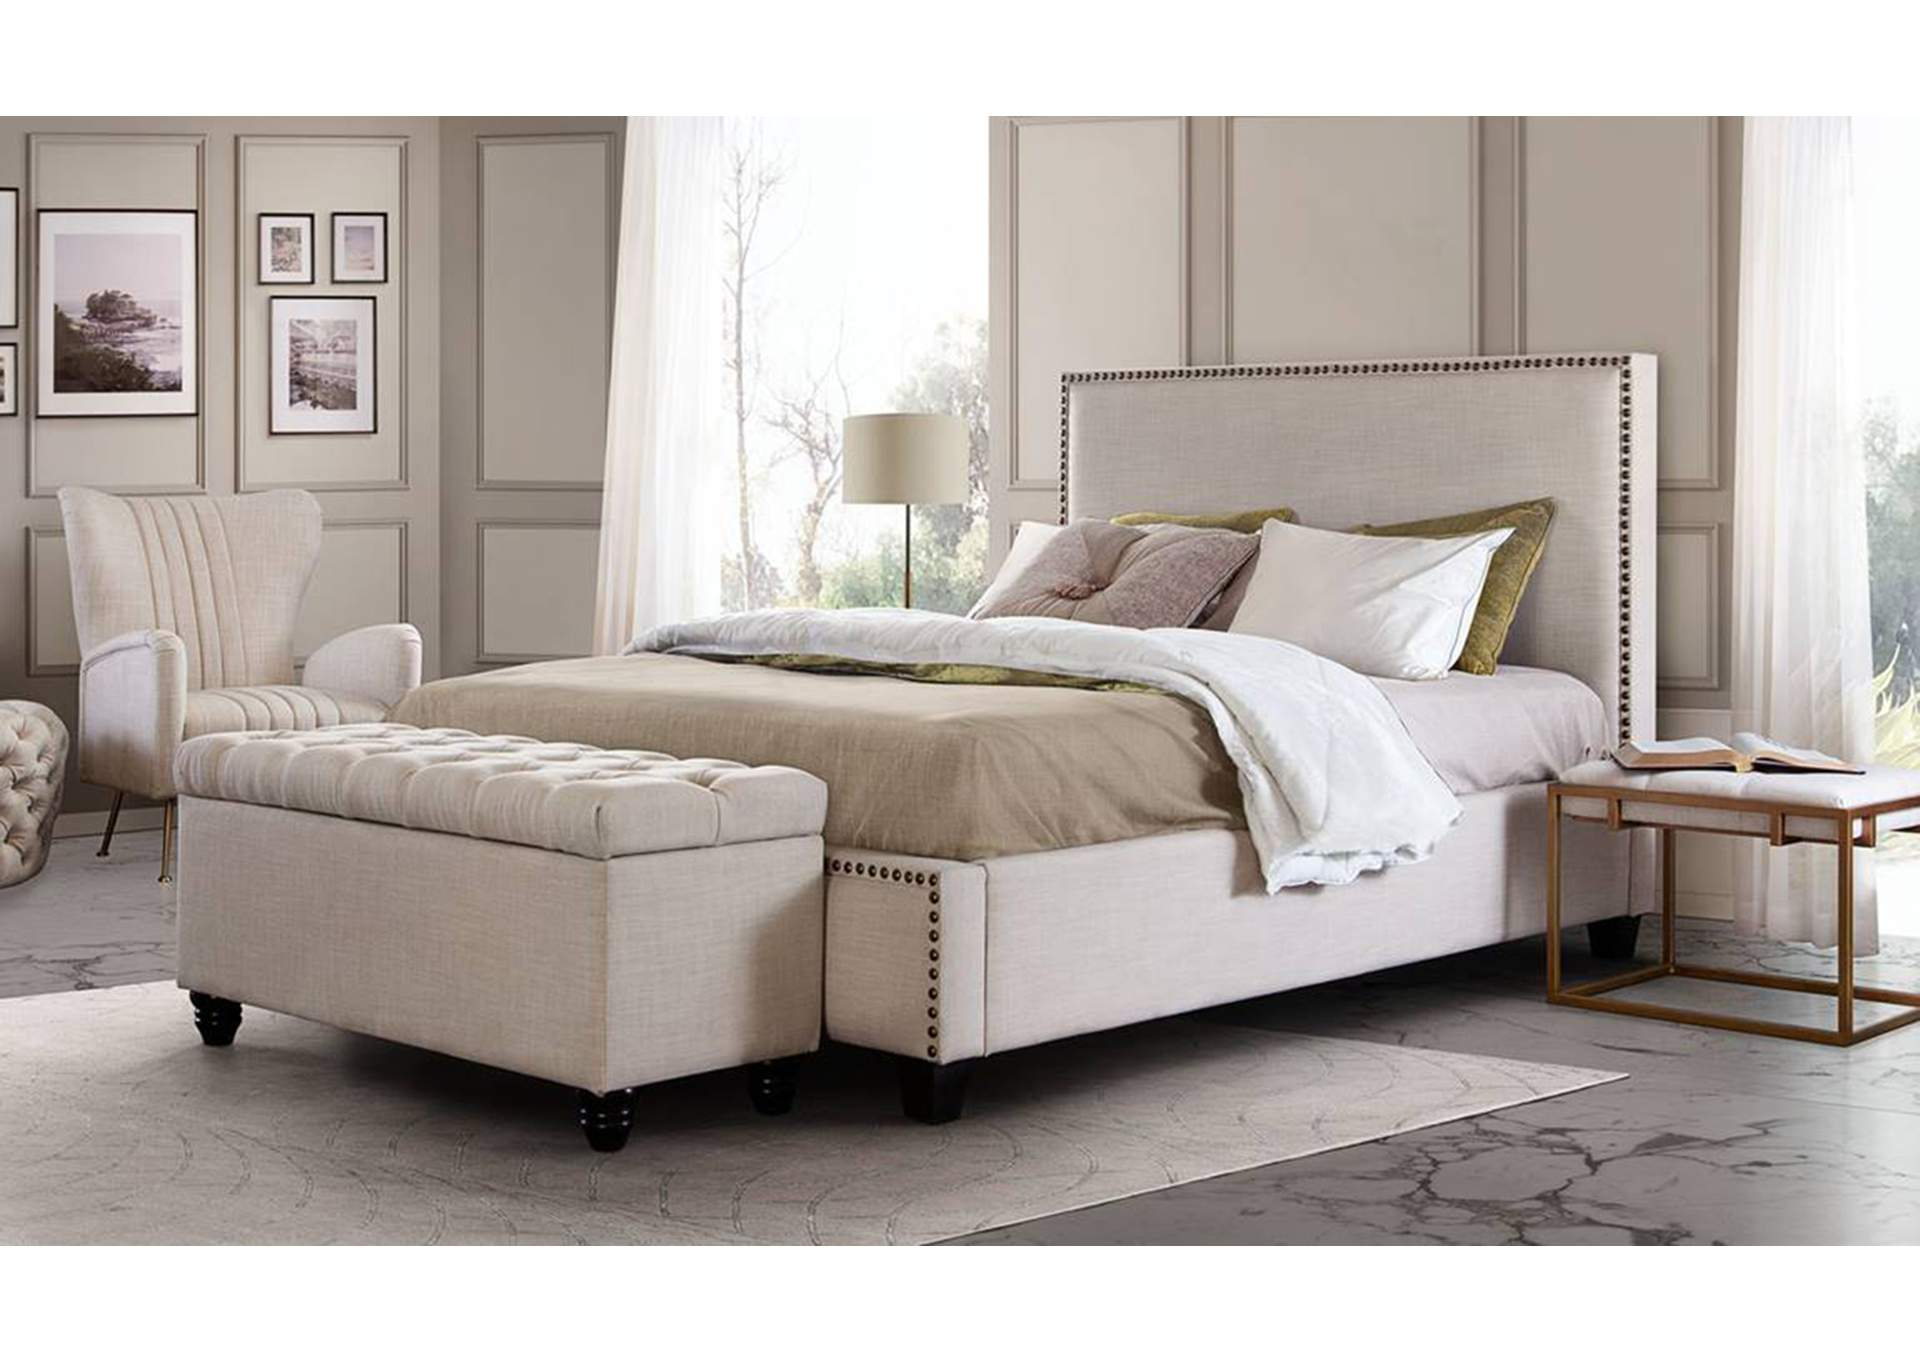 La Jolla Desert Sand Linen Eastern King Platform Bed with Nail Head Accent,Diamond Sofa